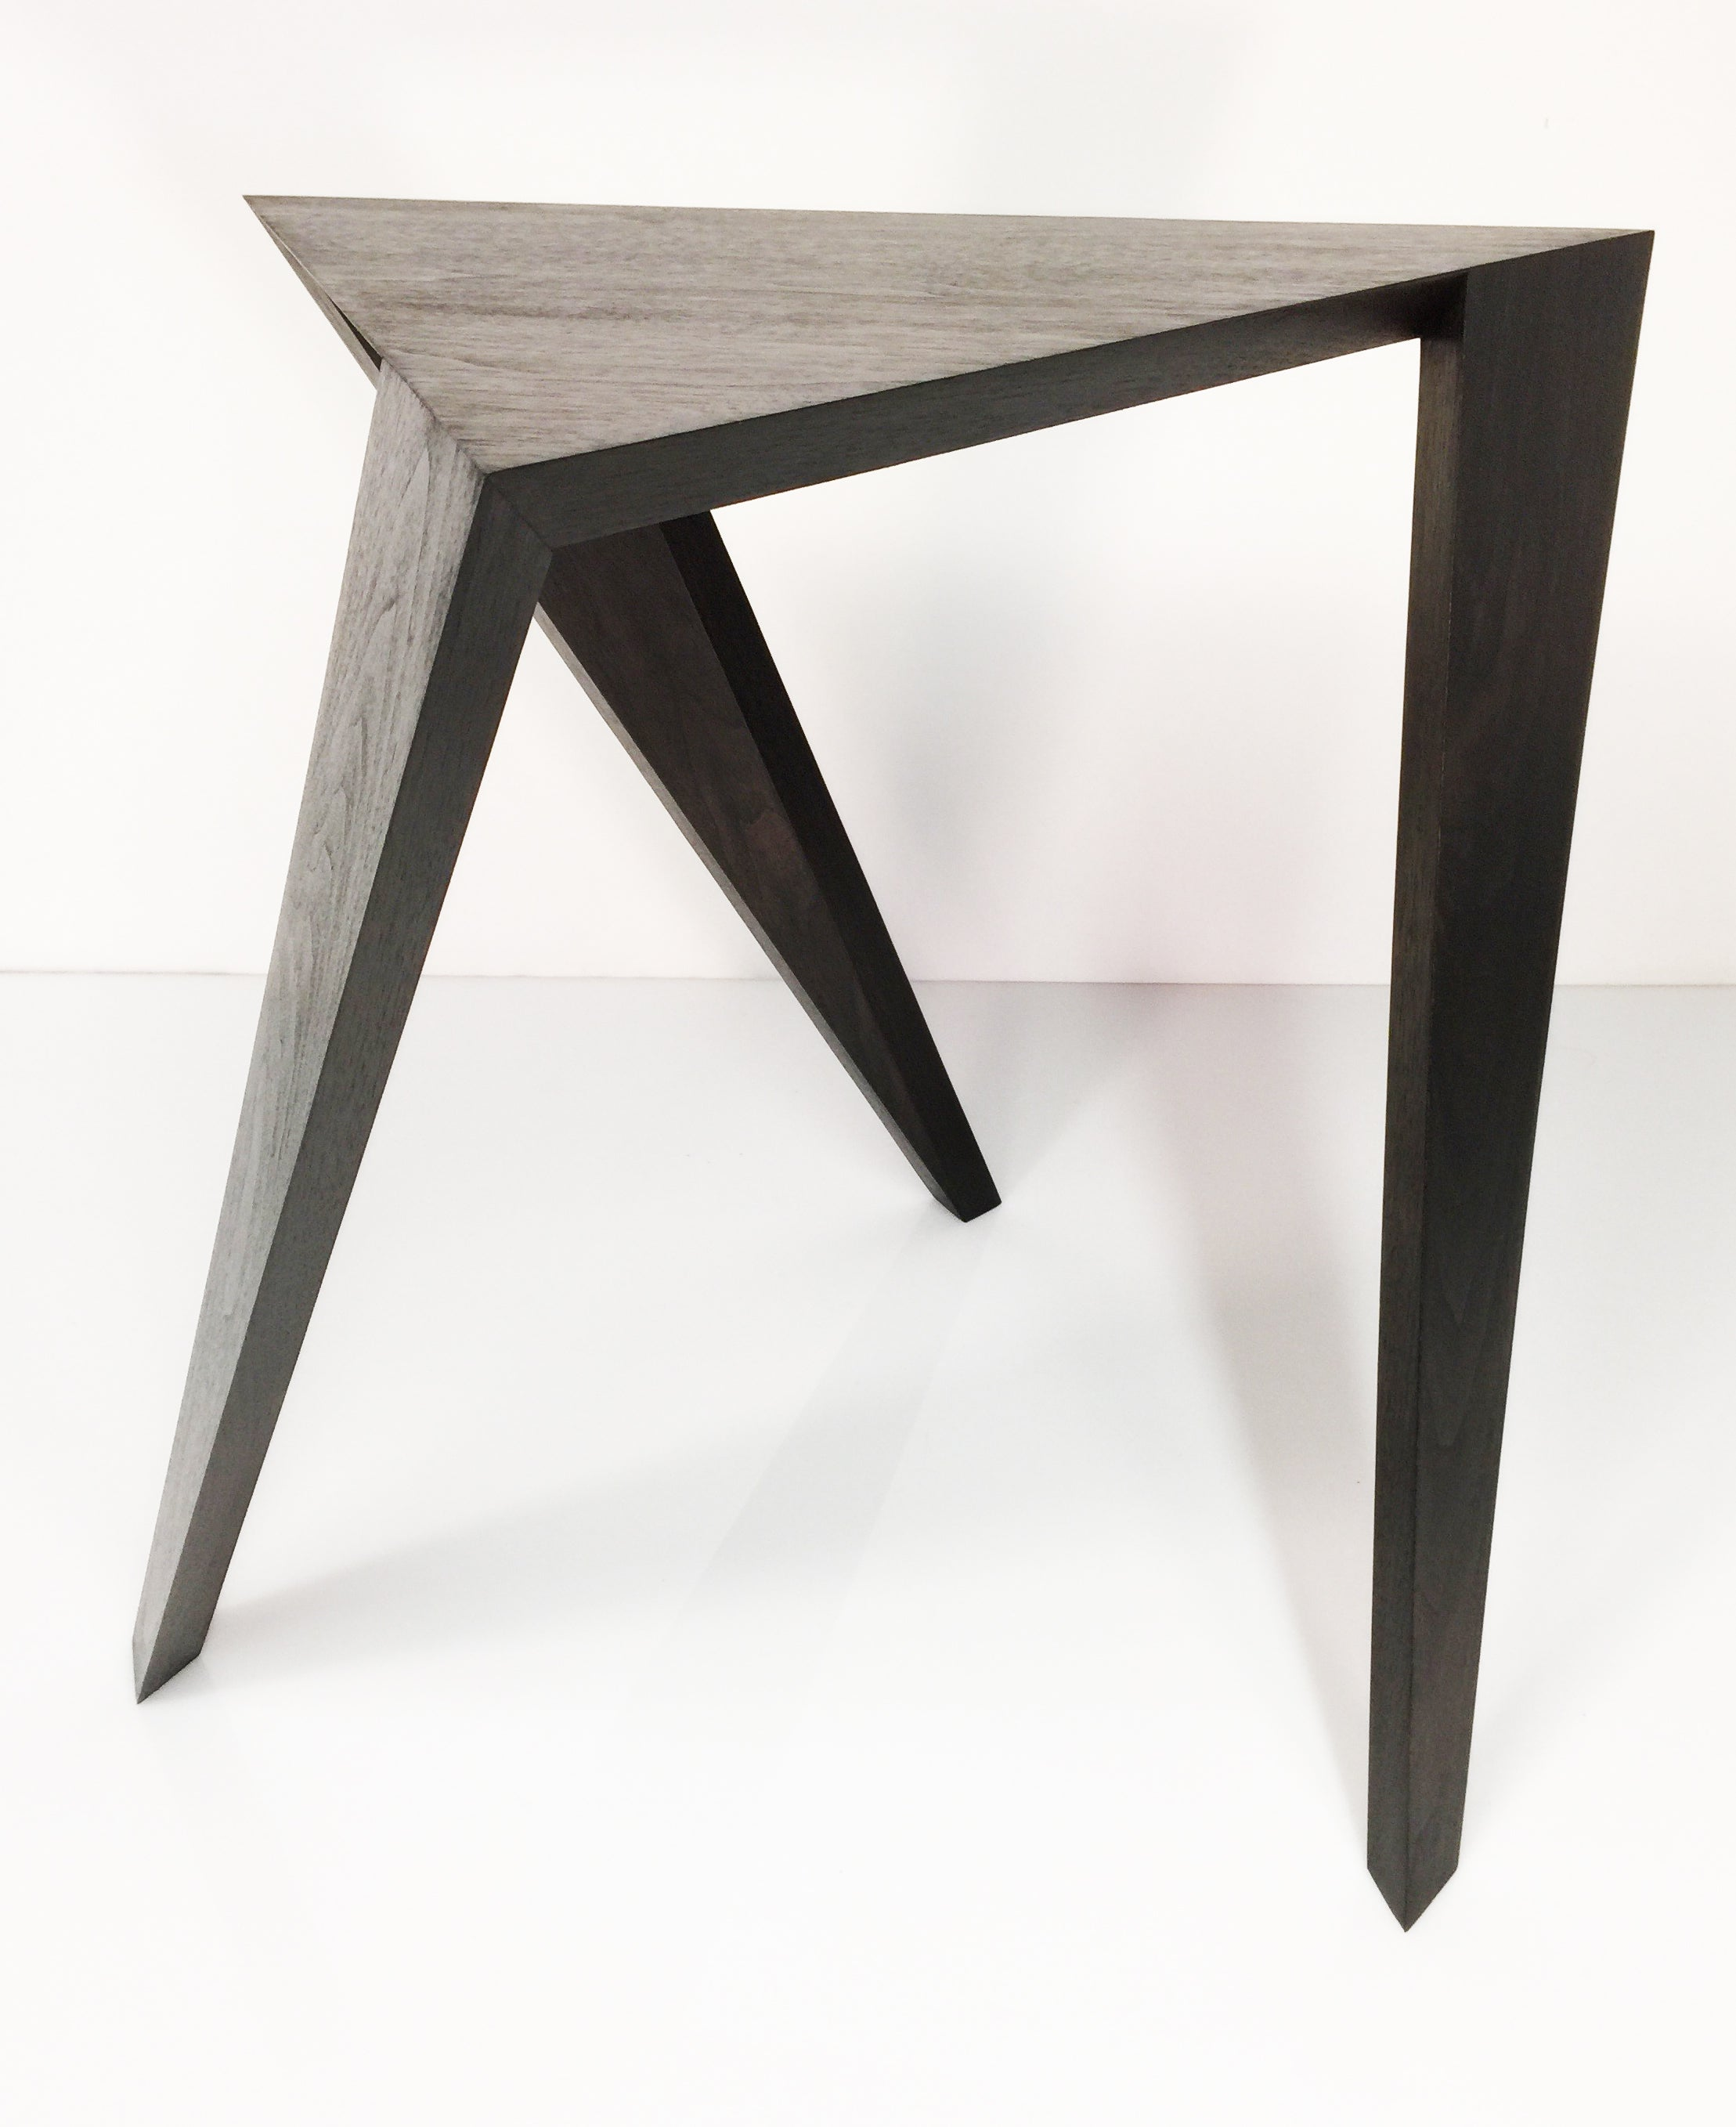 william earle peri wood stacking side or occasional tables design